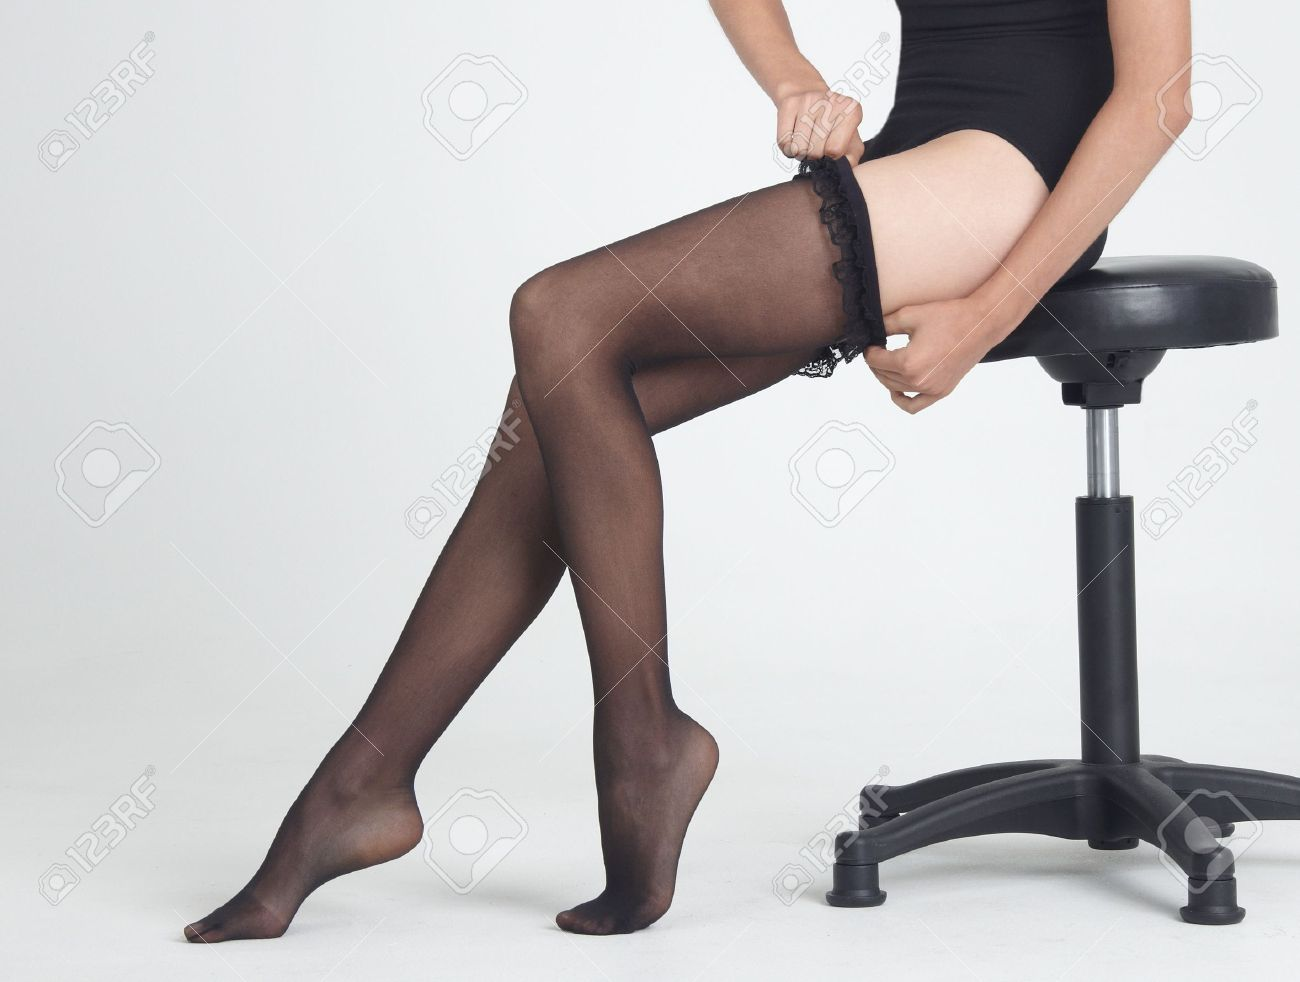 5097ec919319a Woman Putting On Black Stockings Stock Photo, Picture And Royalty ...